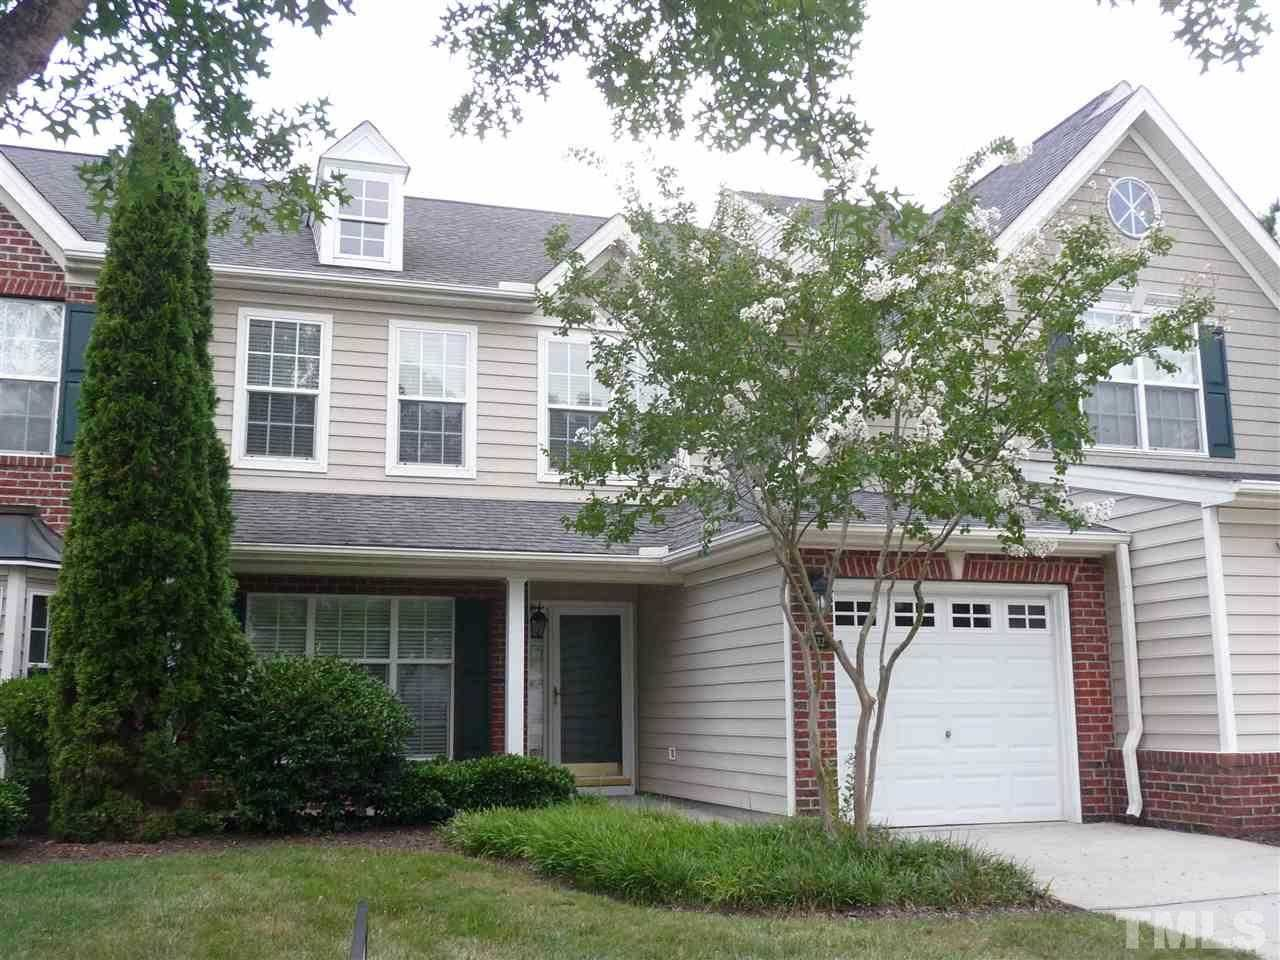 $282,000 - 3Br/3Ba -  for Sale in Brier Creek Country Club, Raleigh